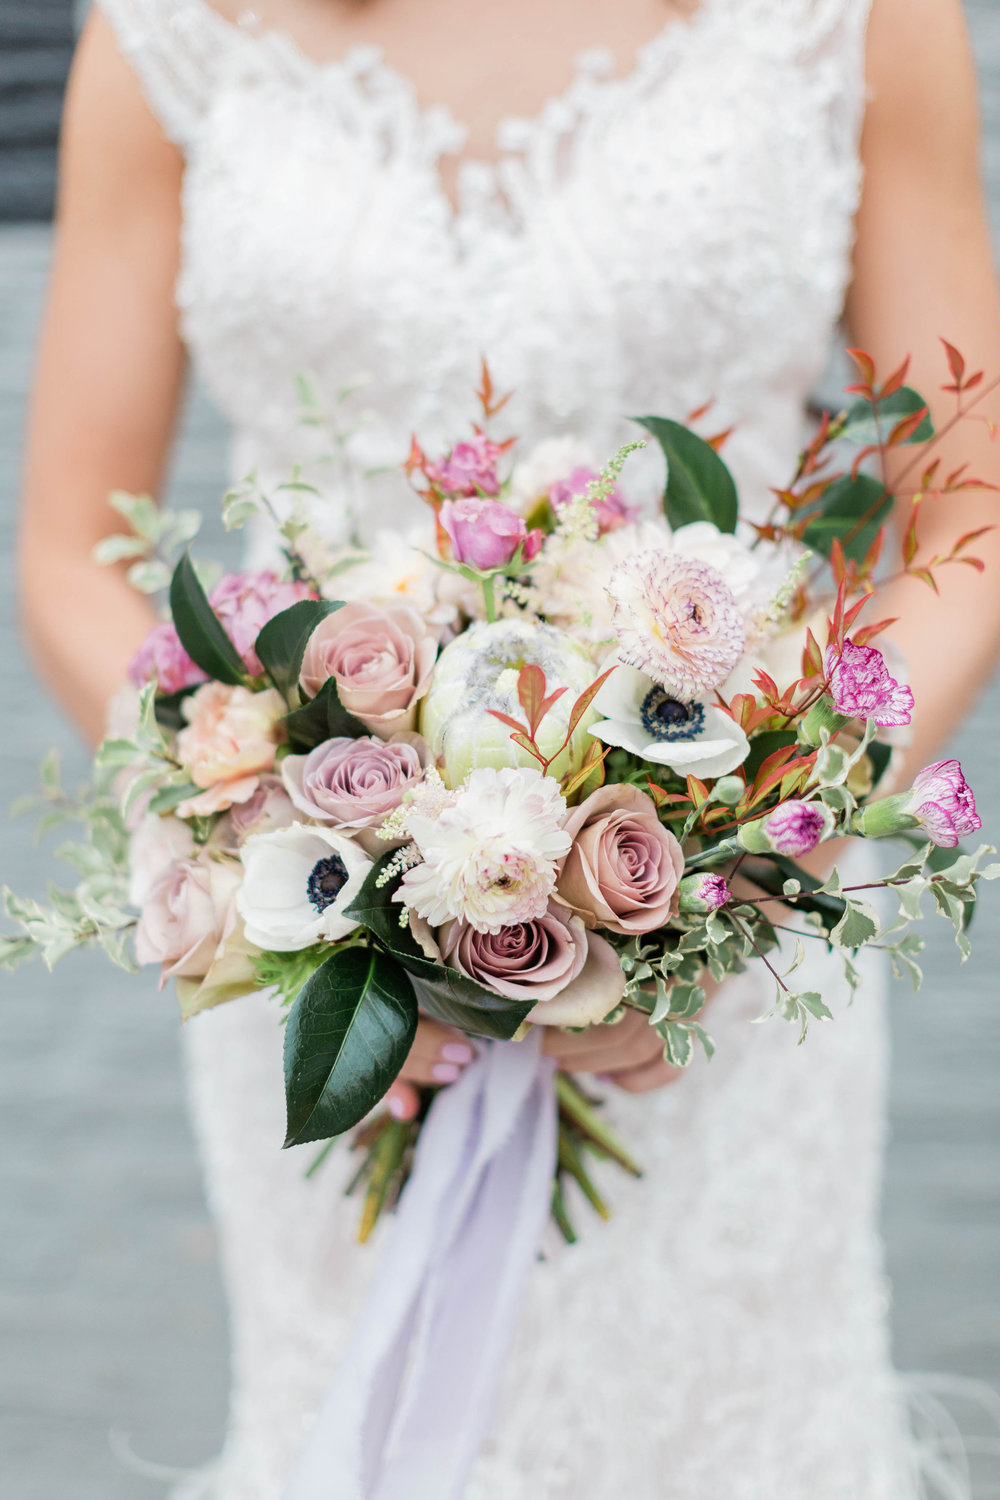 White and Pink Bridal Bouquet Chicago Wedding Photography by Lauryn